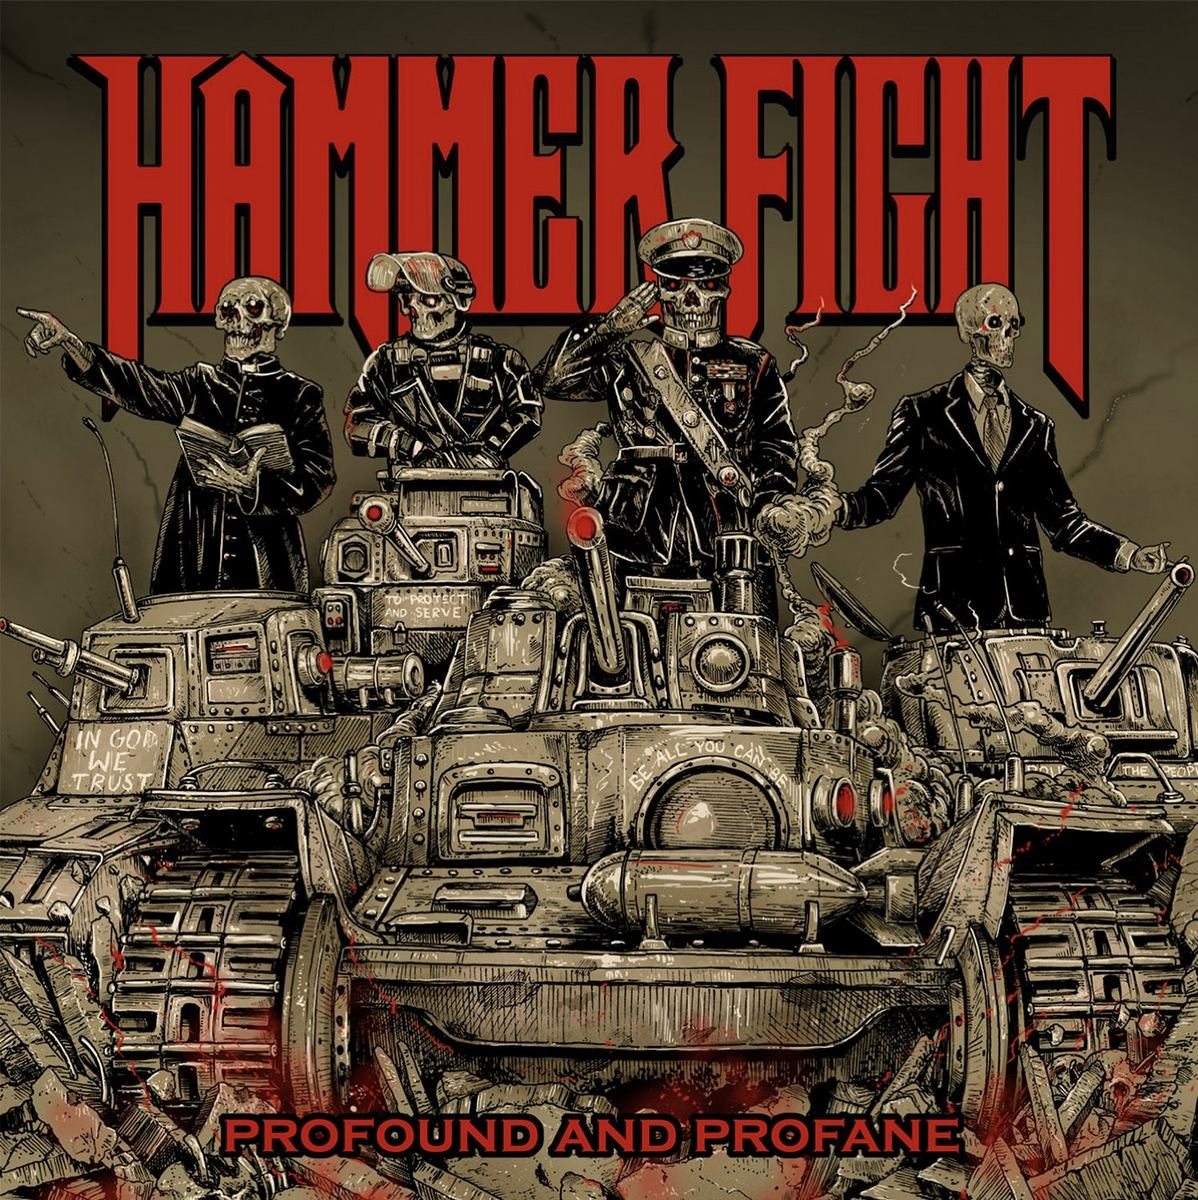 Hammer Fight: Profund and Profane (2016) Book Cover